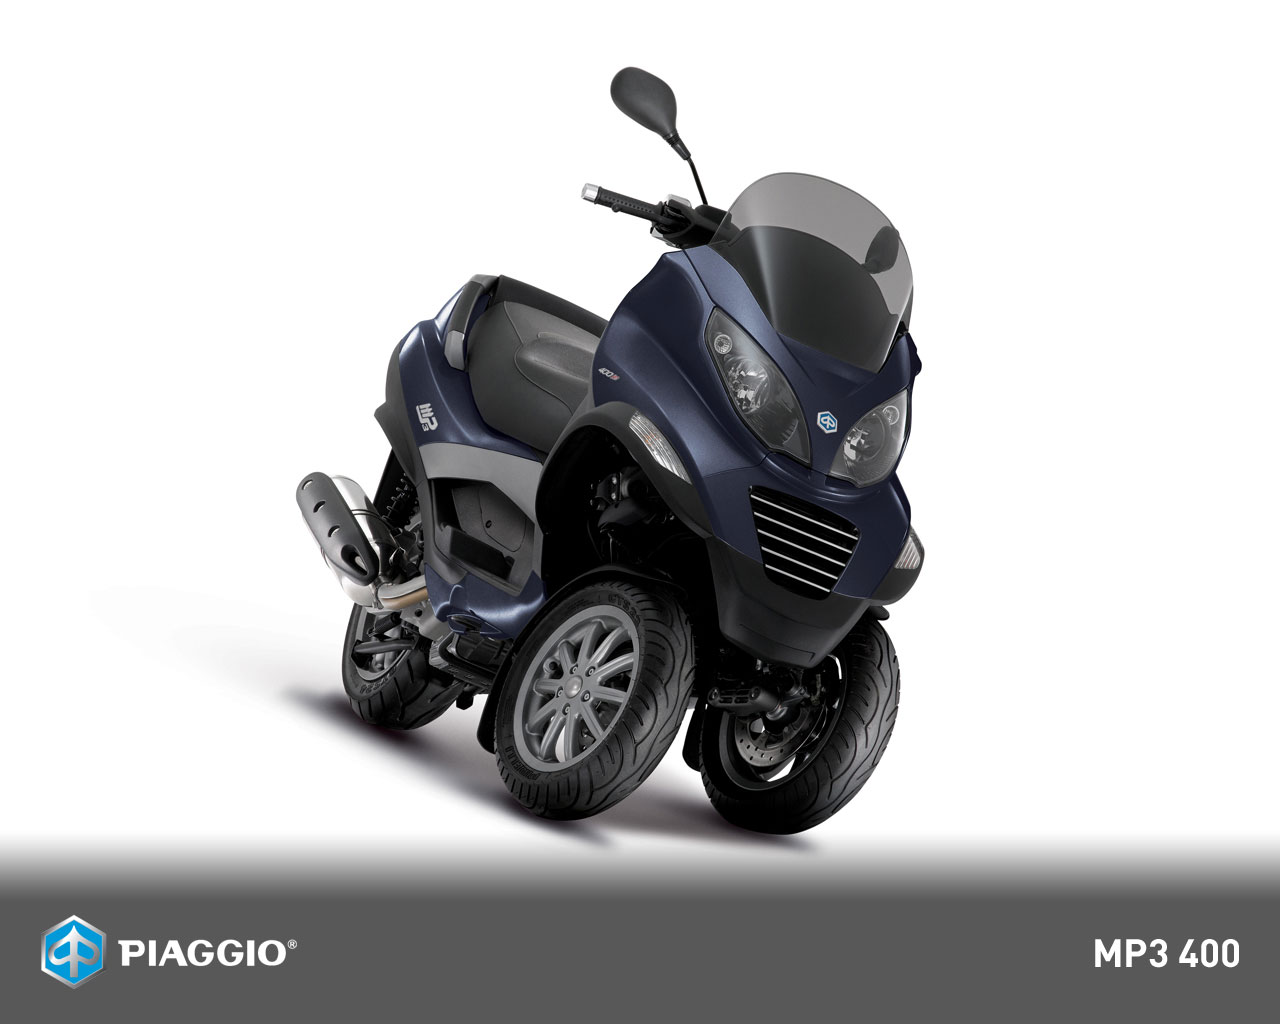 Piaggio MP3 400 images #120065